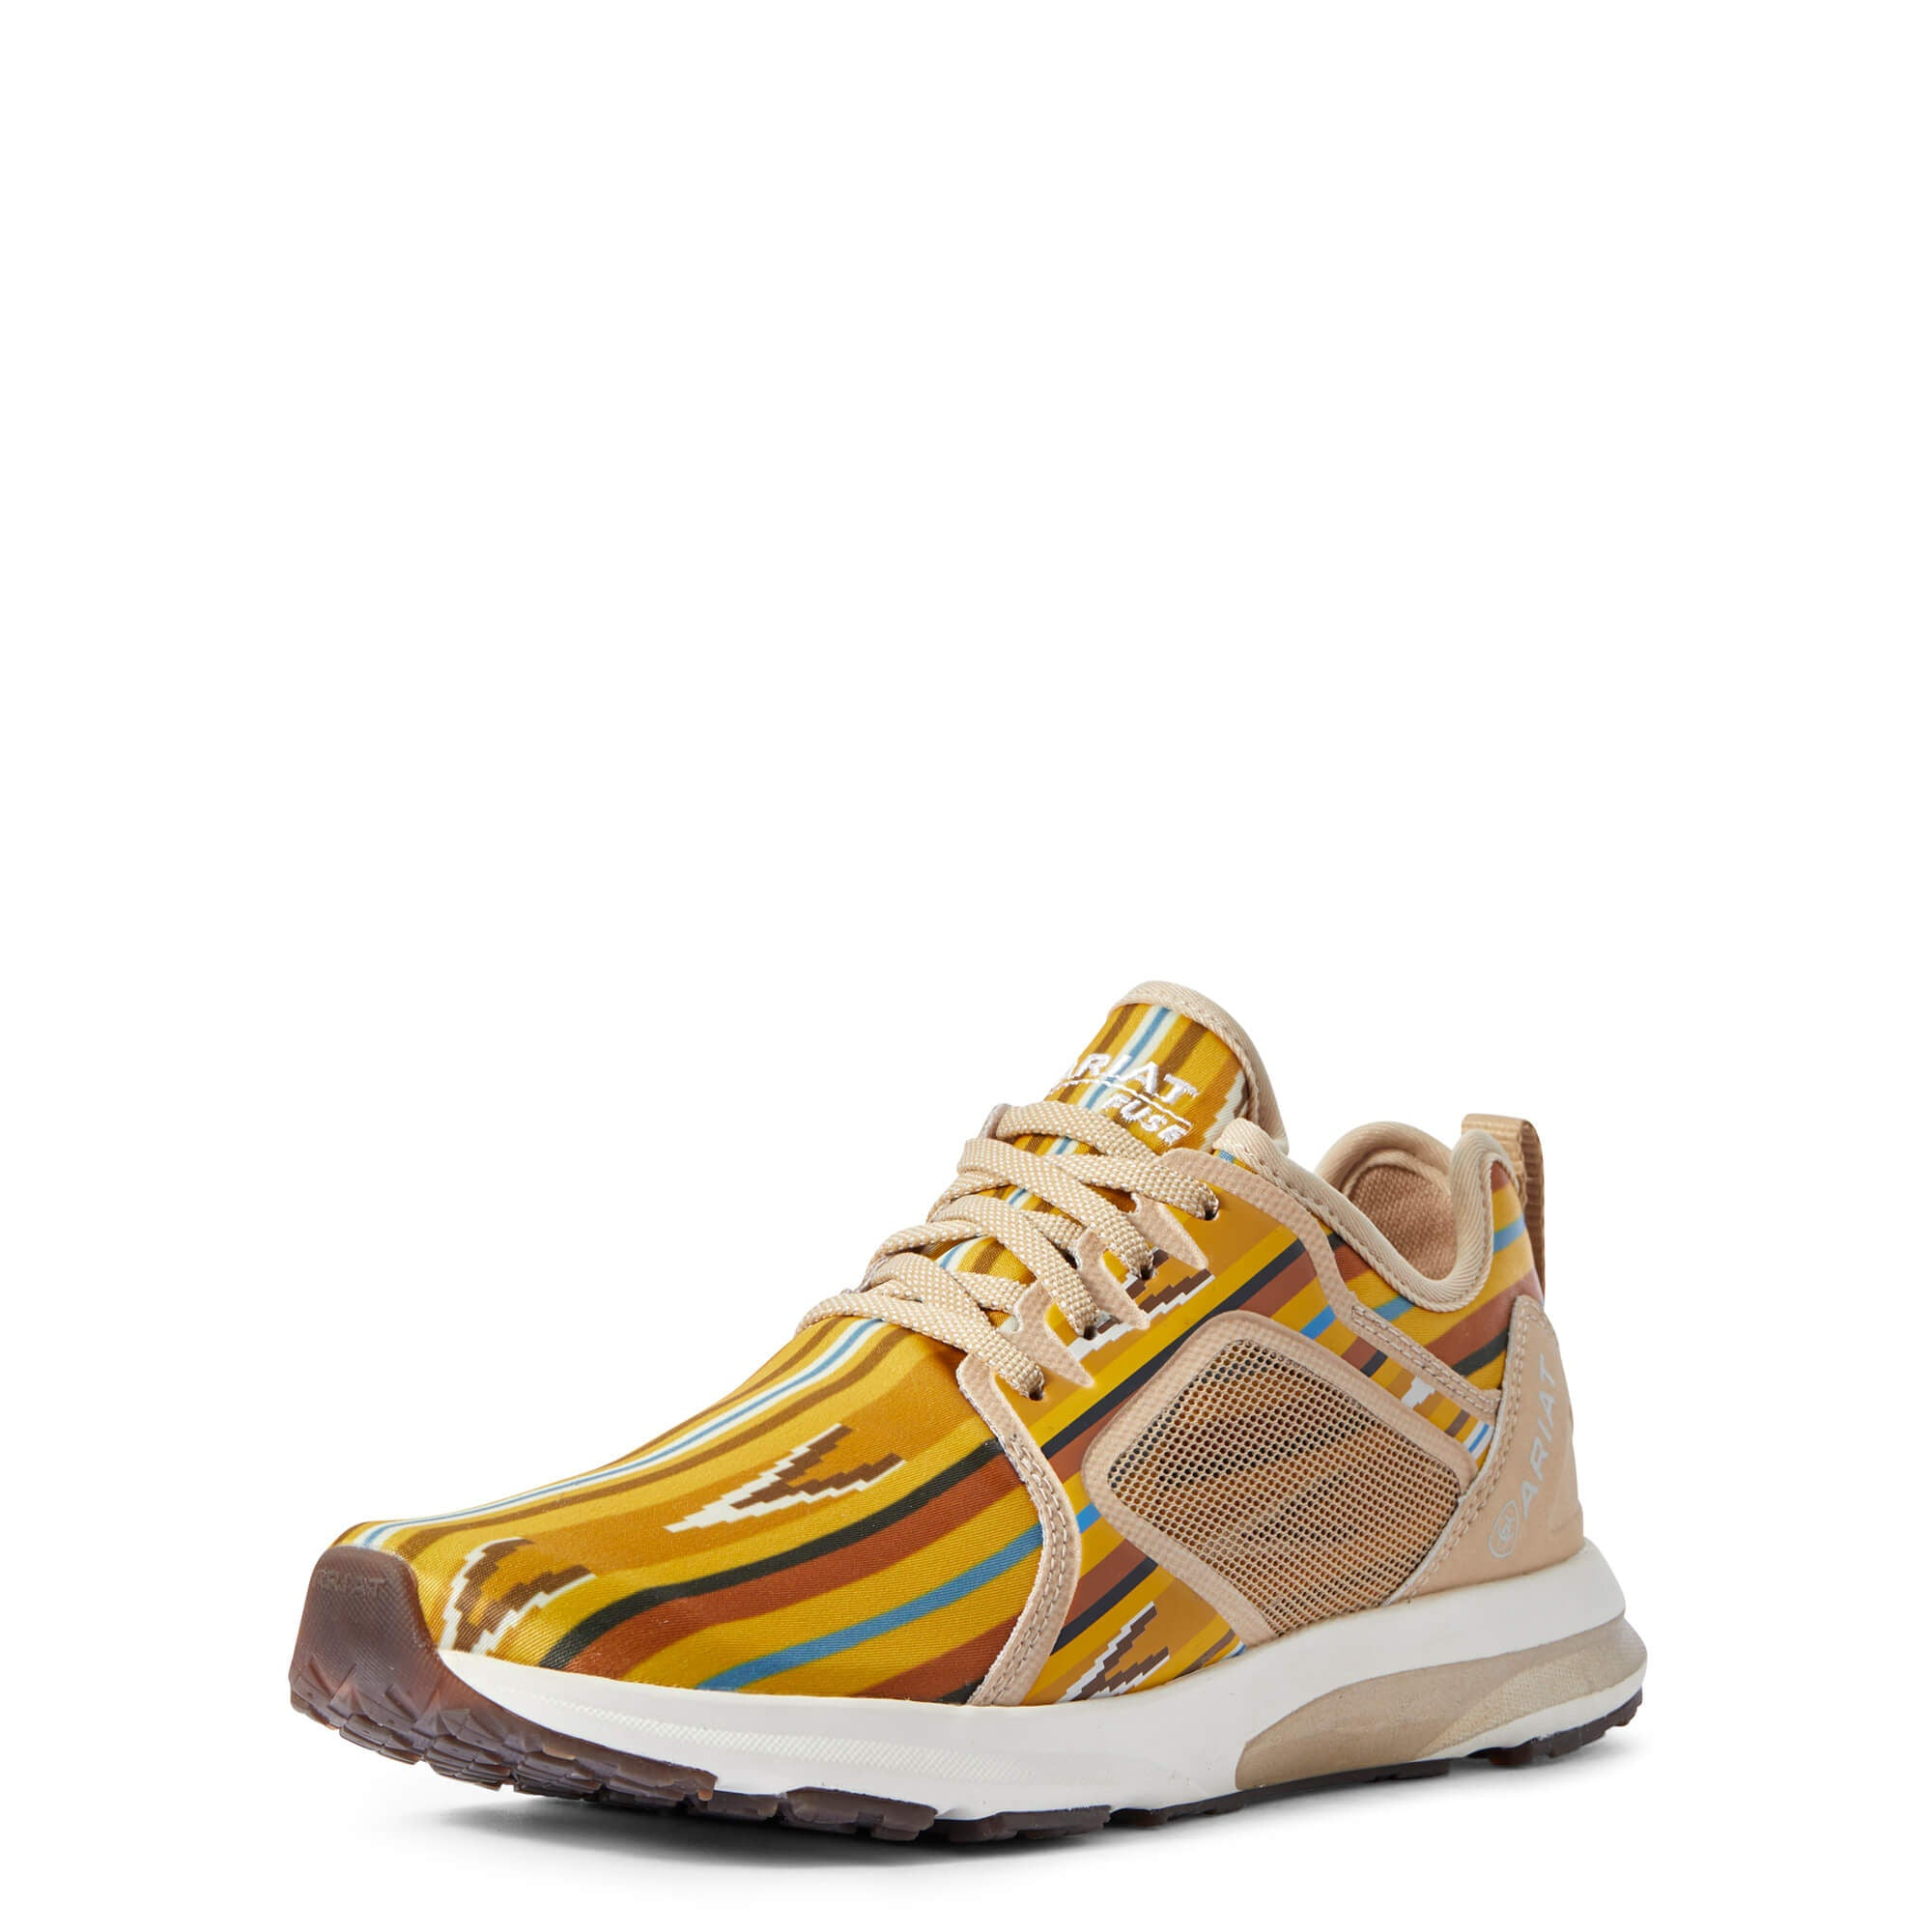 Ariat Fuse Mustard Navajo Tribal Tennis Shoe